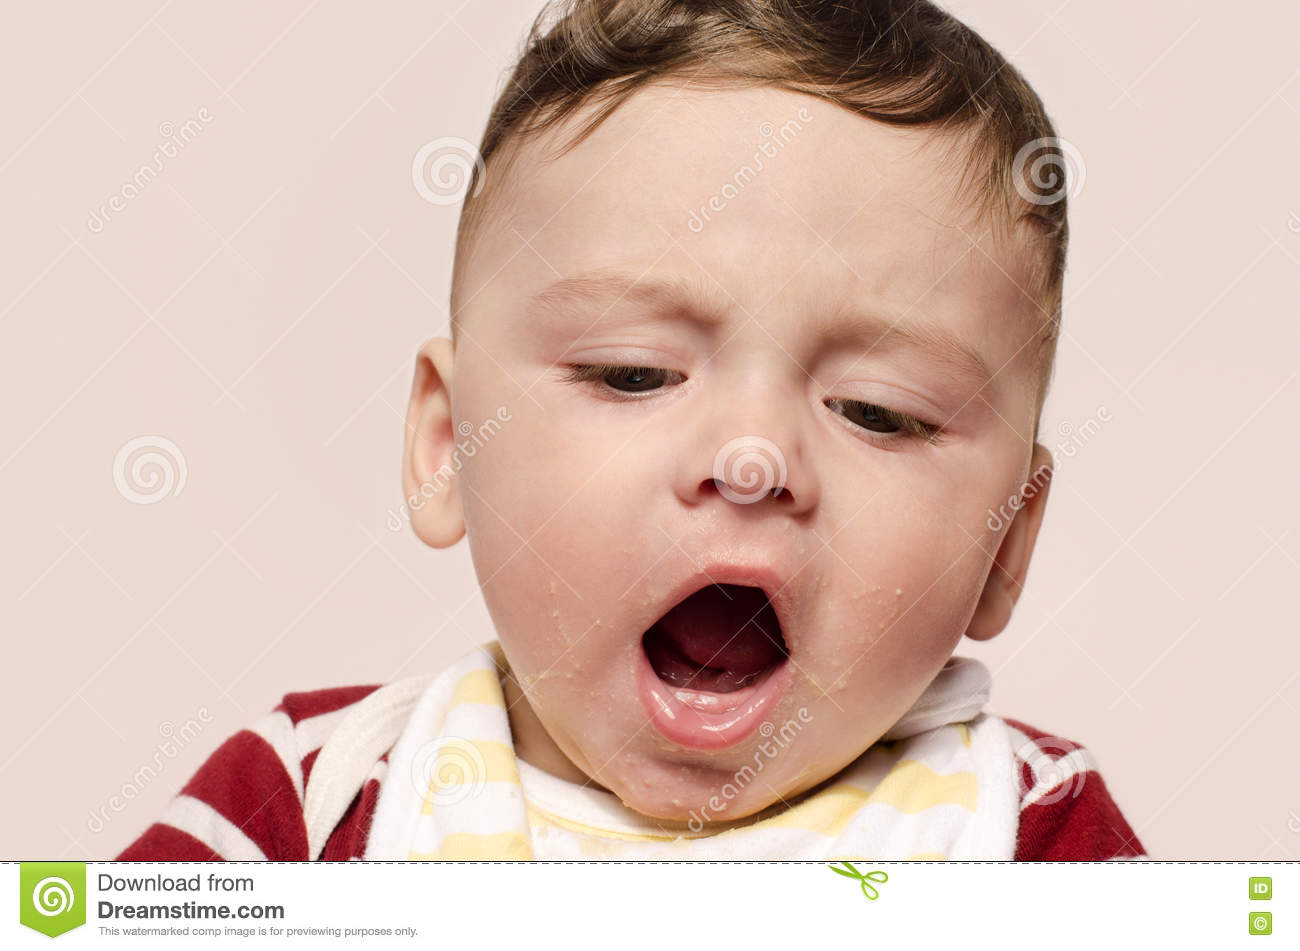 Cute Baby Screaming Refusing To Eat Baby Food. Stock Photo ...